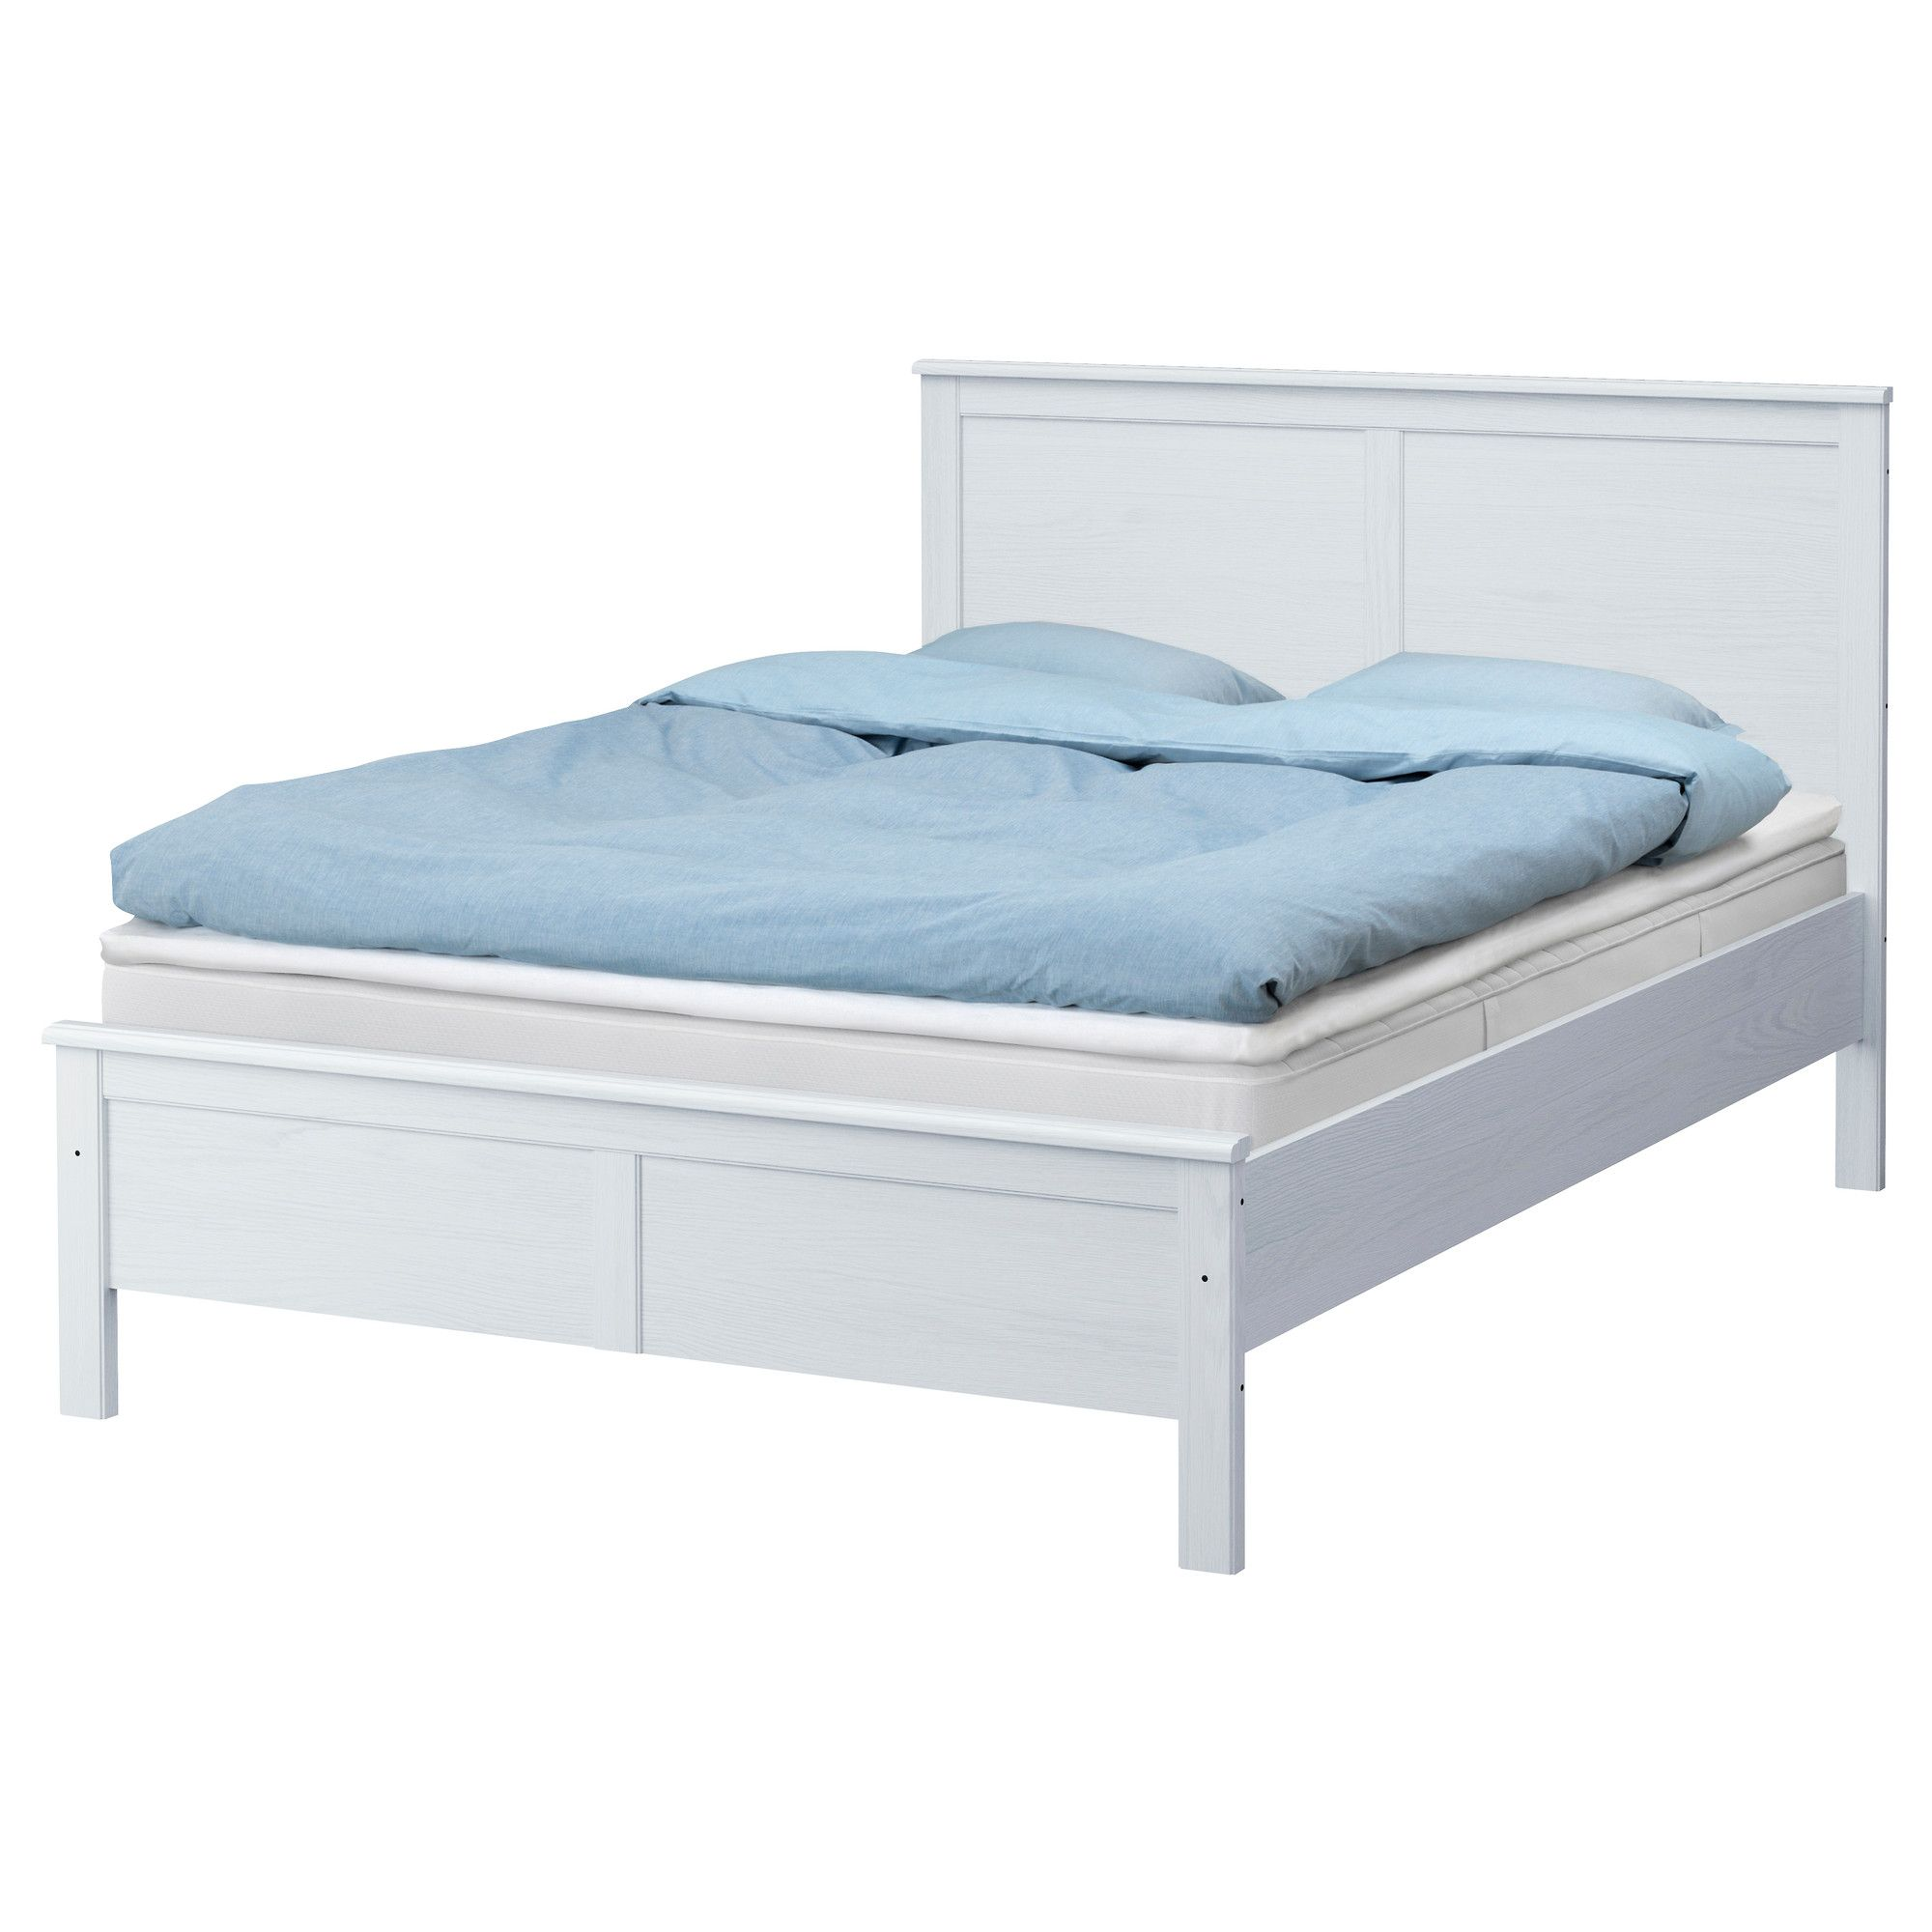 ASPELUND Bed frame with slatted bed base - 140x200 cm - IKEA ...